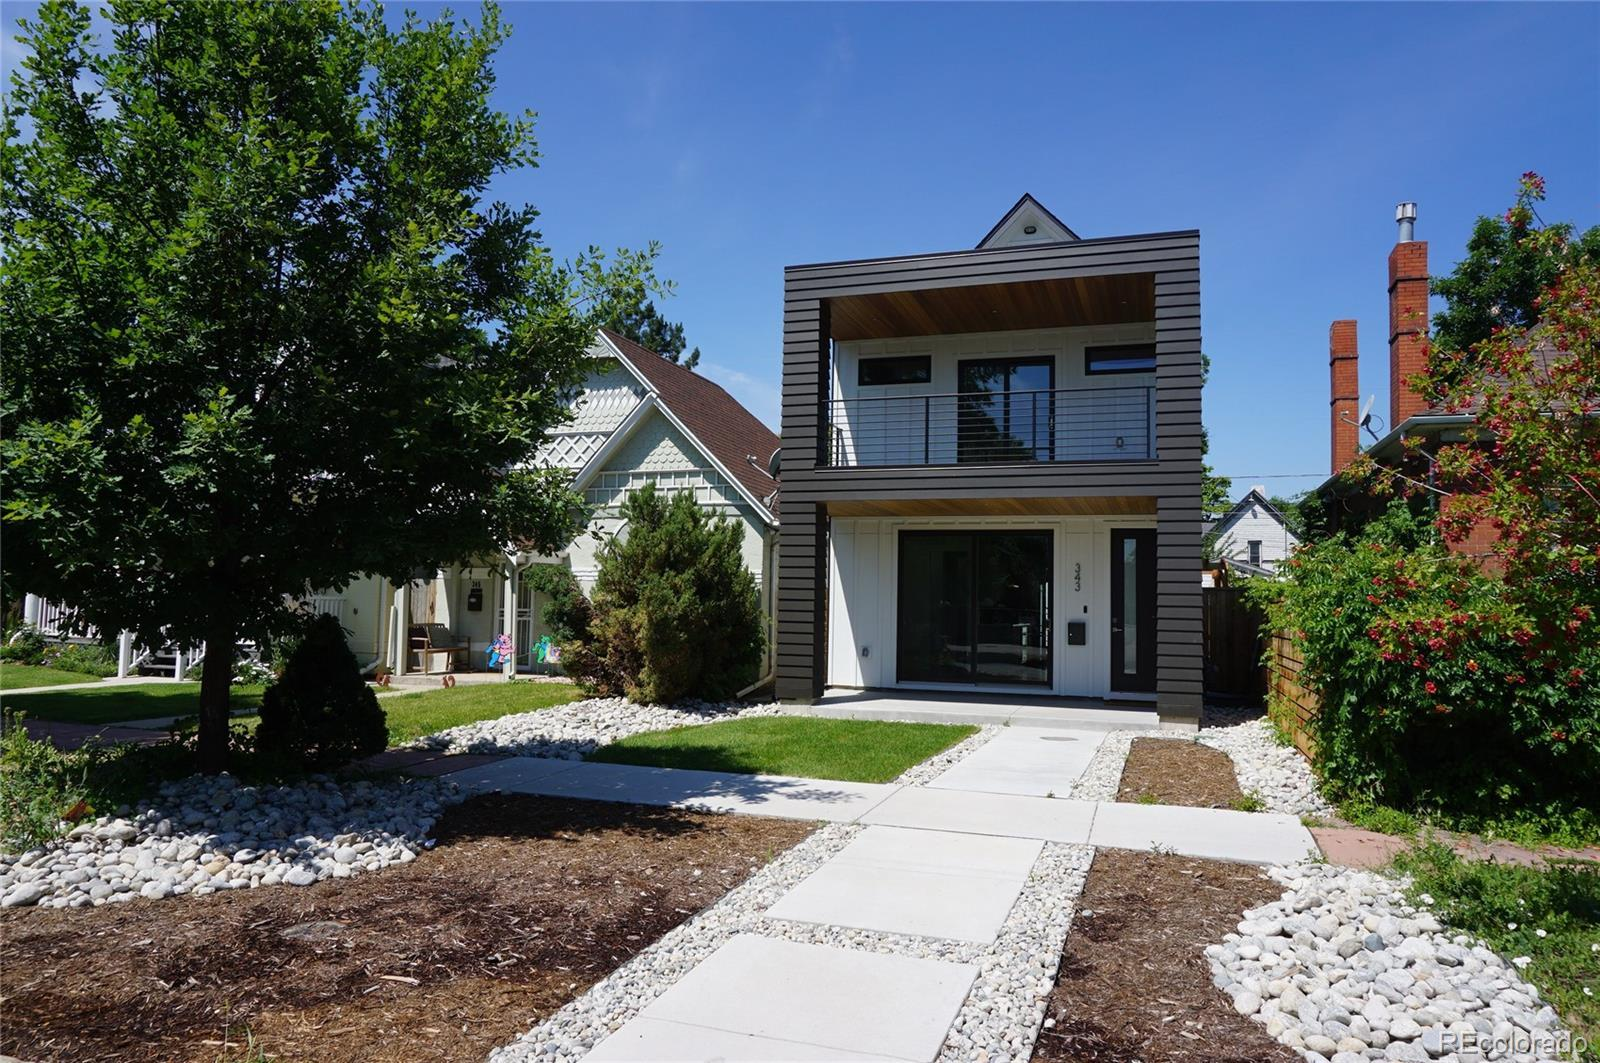 343 S Grant Street, Denver, CO 80209 - MLS#: 9378292